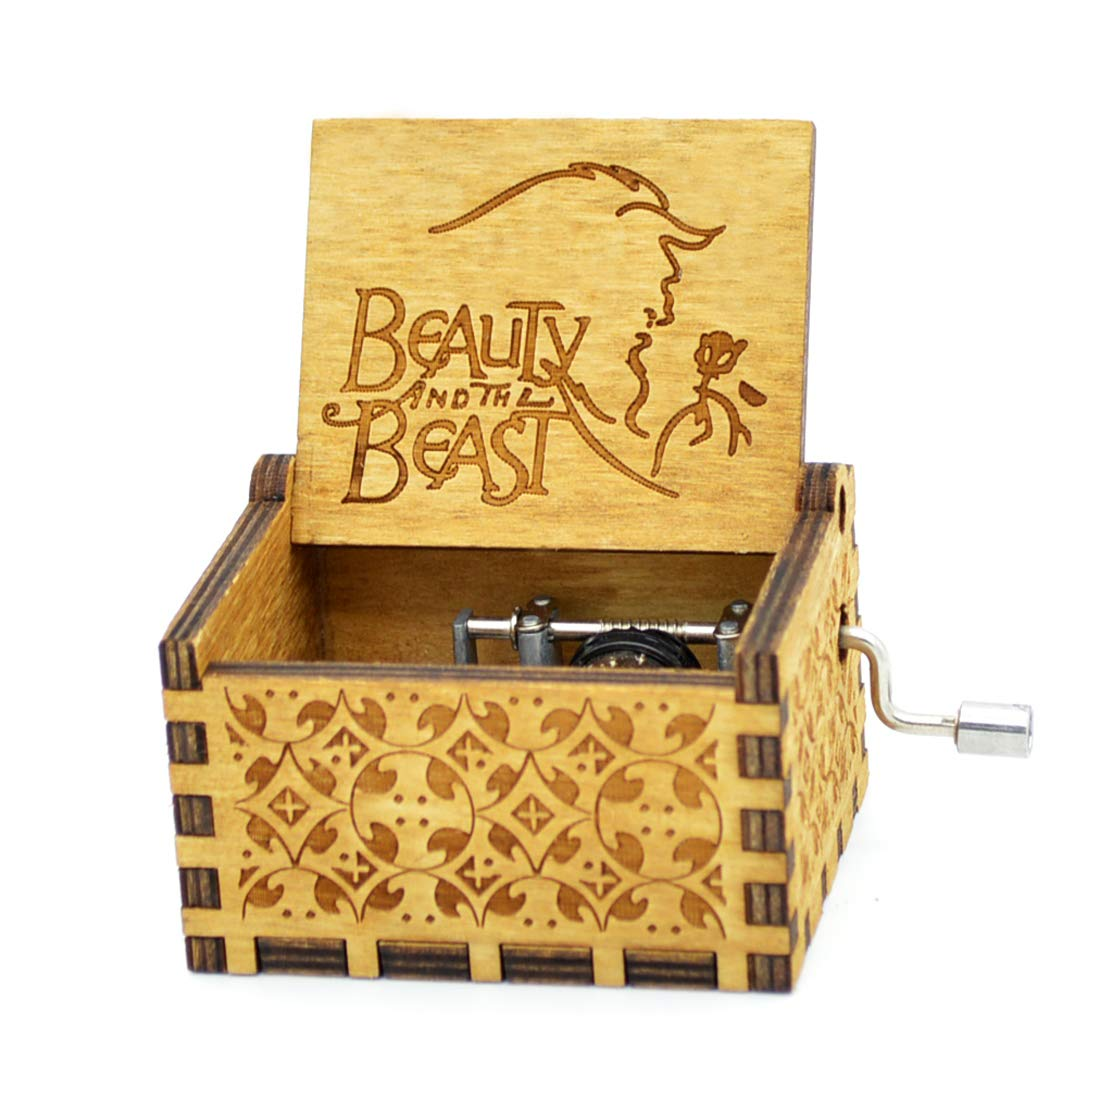 Y& S Wooden Hand Crank Beauty and the Beast Theme Music Box 18 Note Mechanism Antique Carved Hand Crank Musical Box For kid Birthday Gift (Beauty and the beast) SY